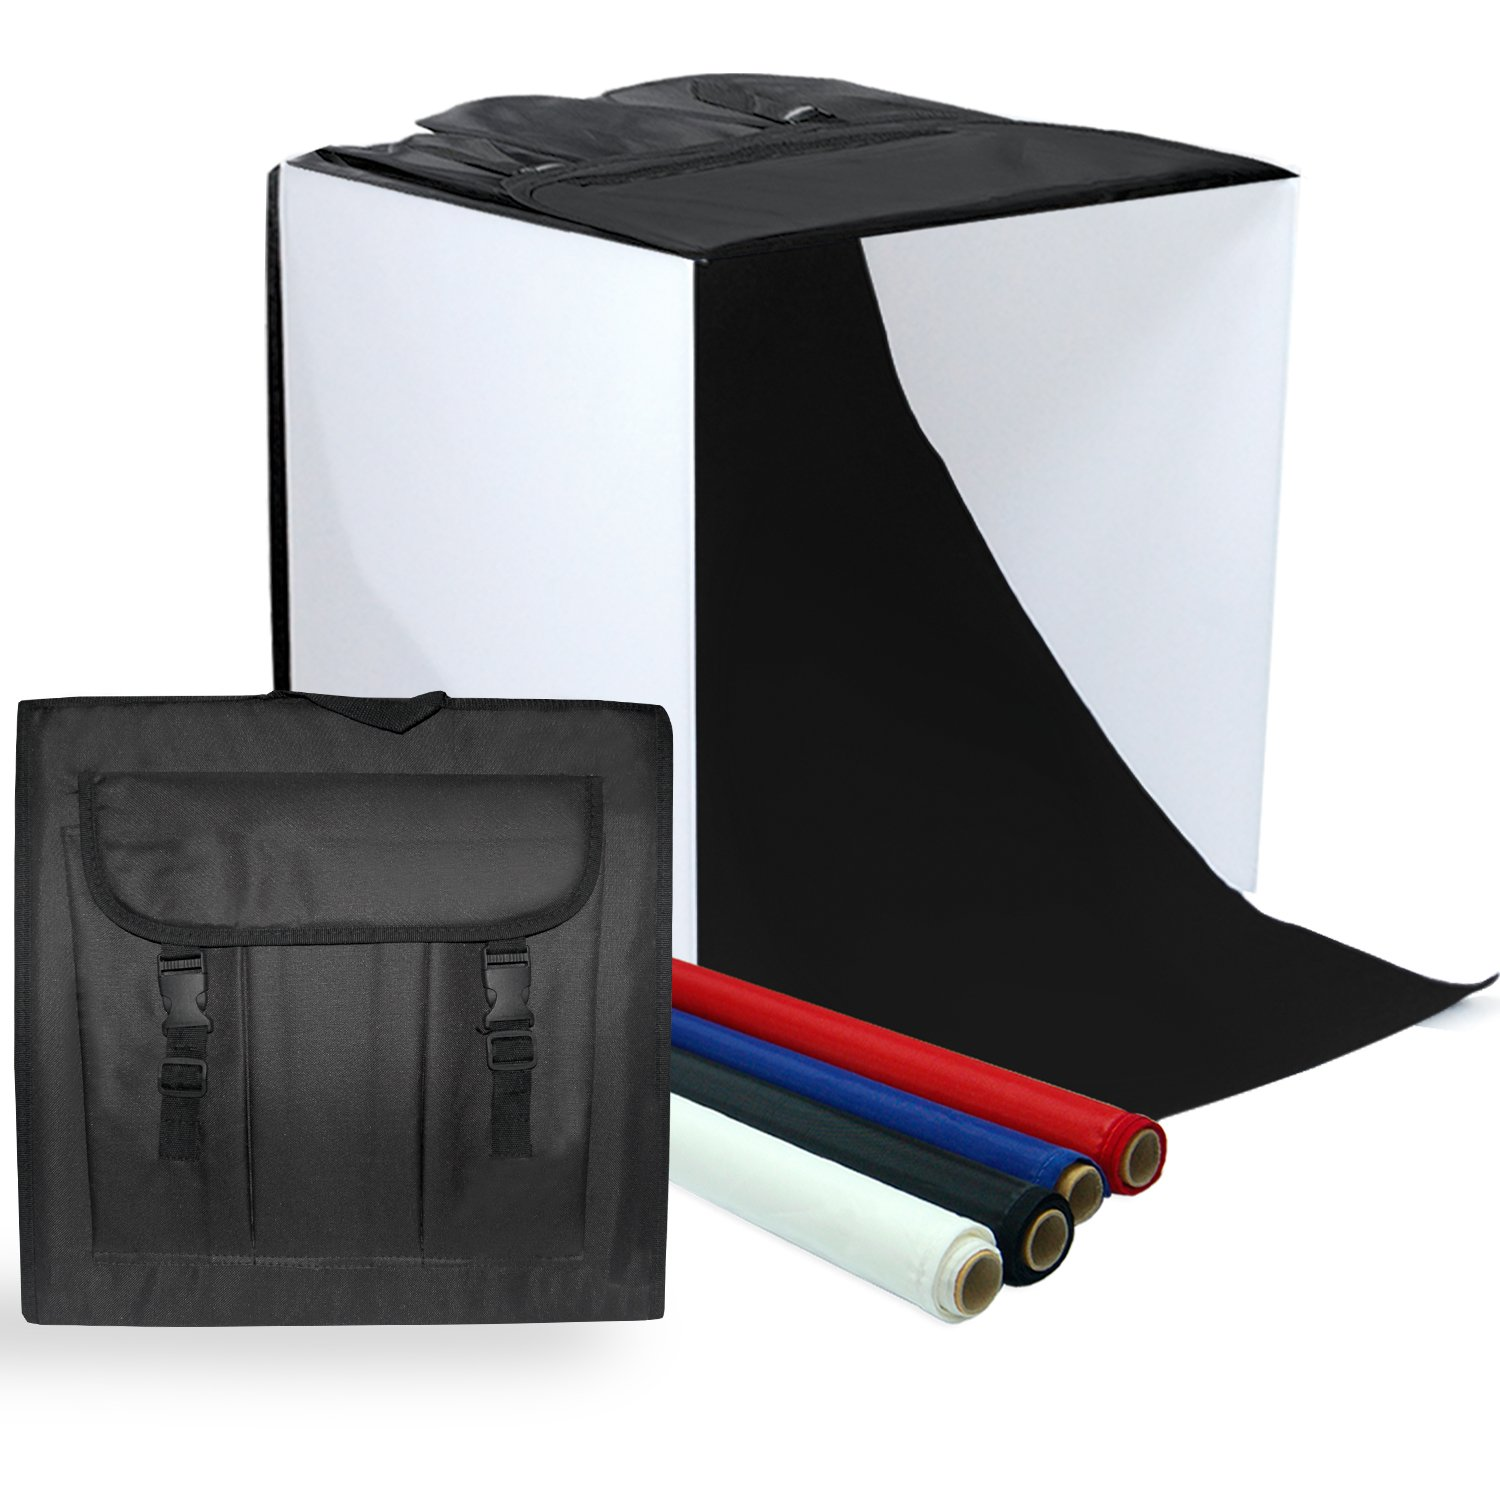 LimoStudio Photography Table Top Photo Light Tent Kit, 24'' Photo Light Box, Continous Lighting Kit, Camera Tripod & Cell Phone Holder AGG1069 by LimoStudio (Image #7)